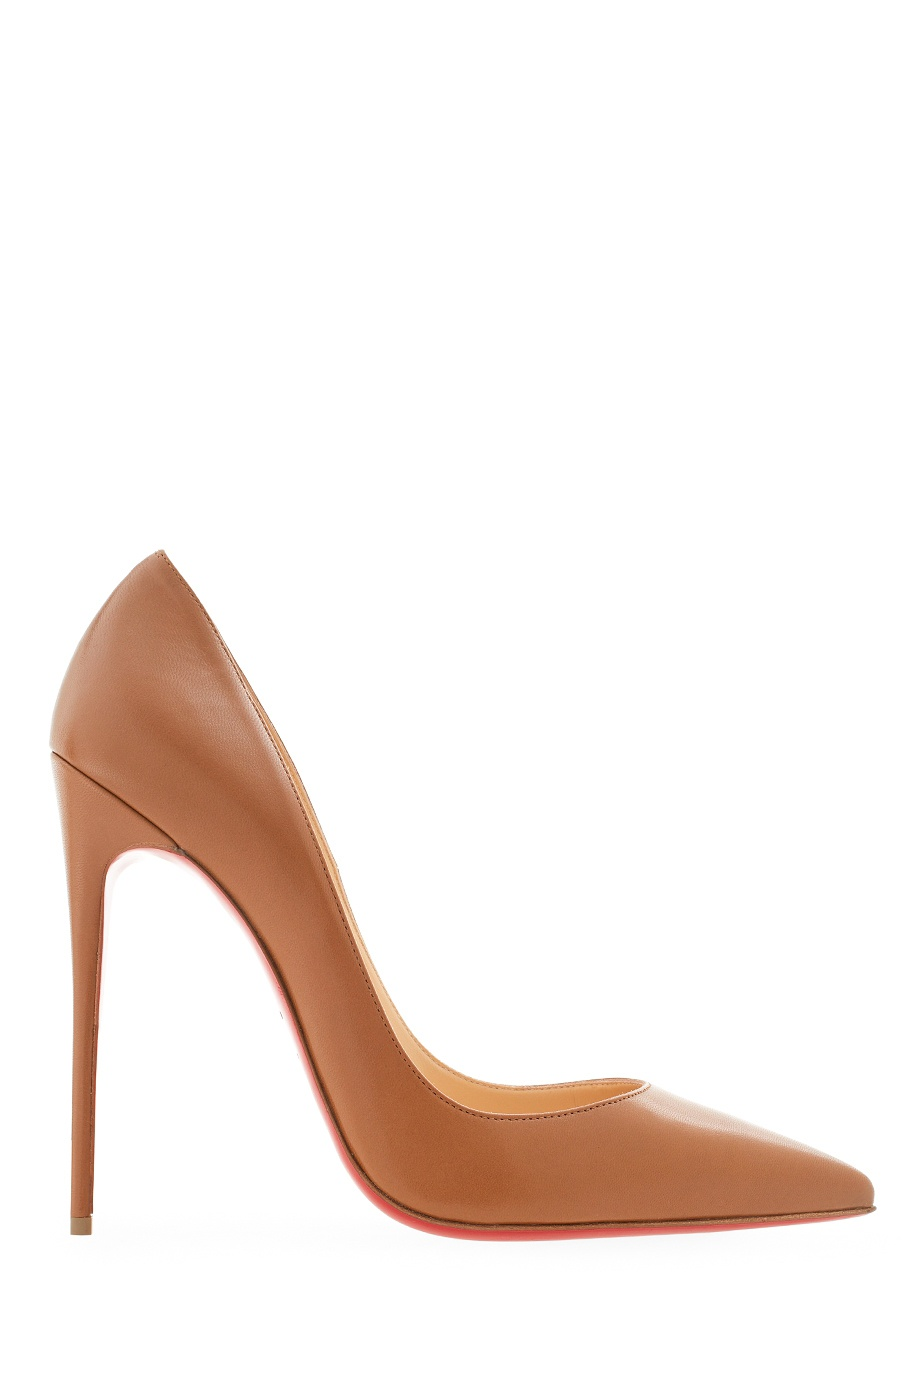 Туфли So Kate 120 Christian Louboutin (фото)